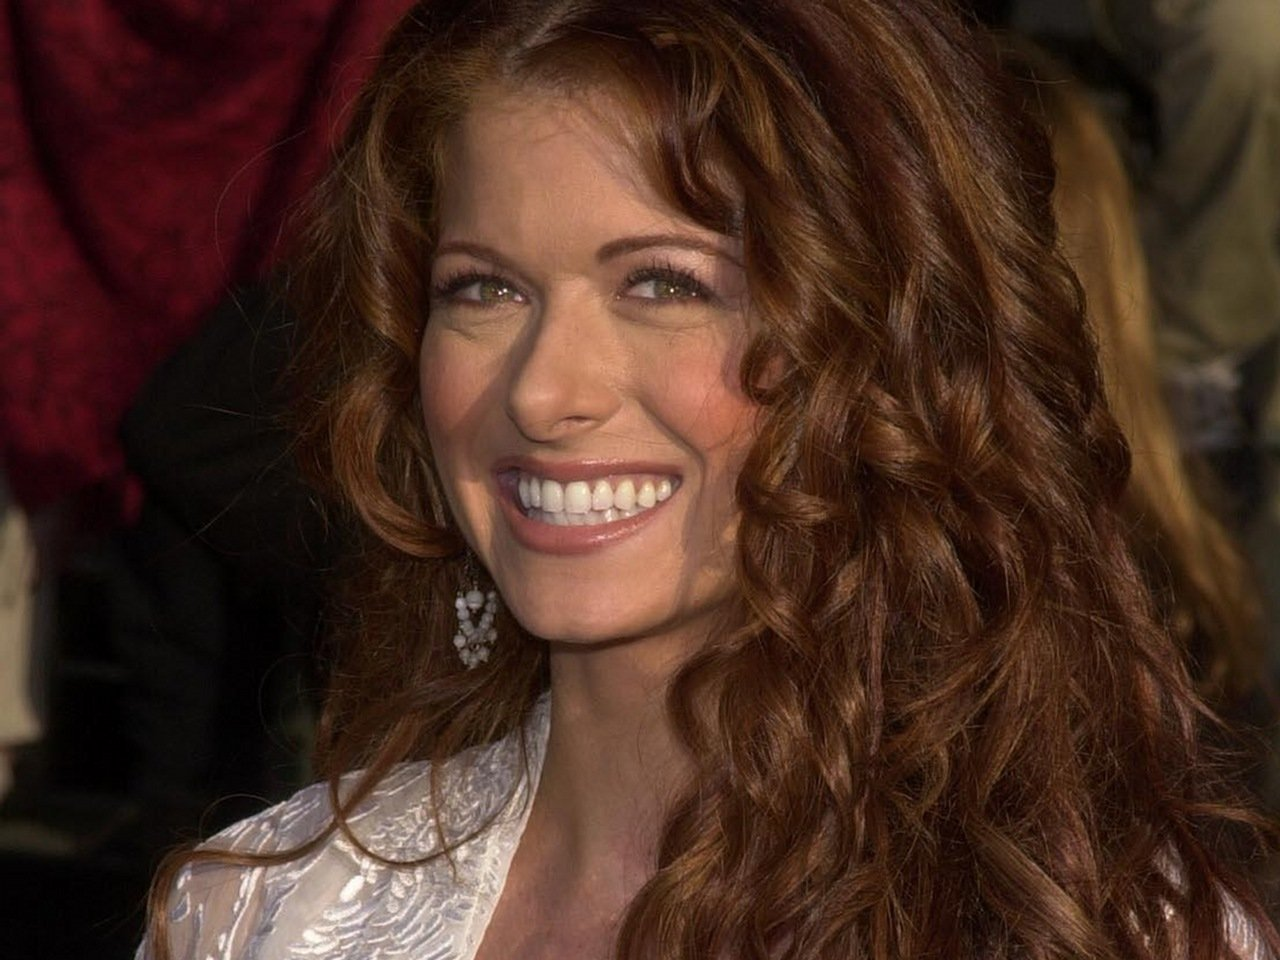 debra messing fansitedebra messing 2016, debra messing 2017, debra messing film, debra messing actress, debra messing gifs, debra messing weight and height, debra messing filmy, debra messing wikipedia, debra messing imdb, debra messing superiorpics, debra messing fansite, debra messing instagram, debra messing twitter, debra messing movies, debra messing leather, debra messing wiki, debra messing best movies, debra messing net worth, debra messing wallpaper, debra messing filmography